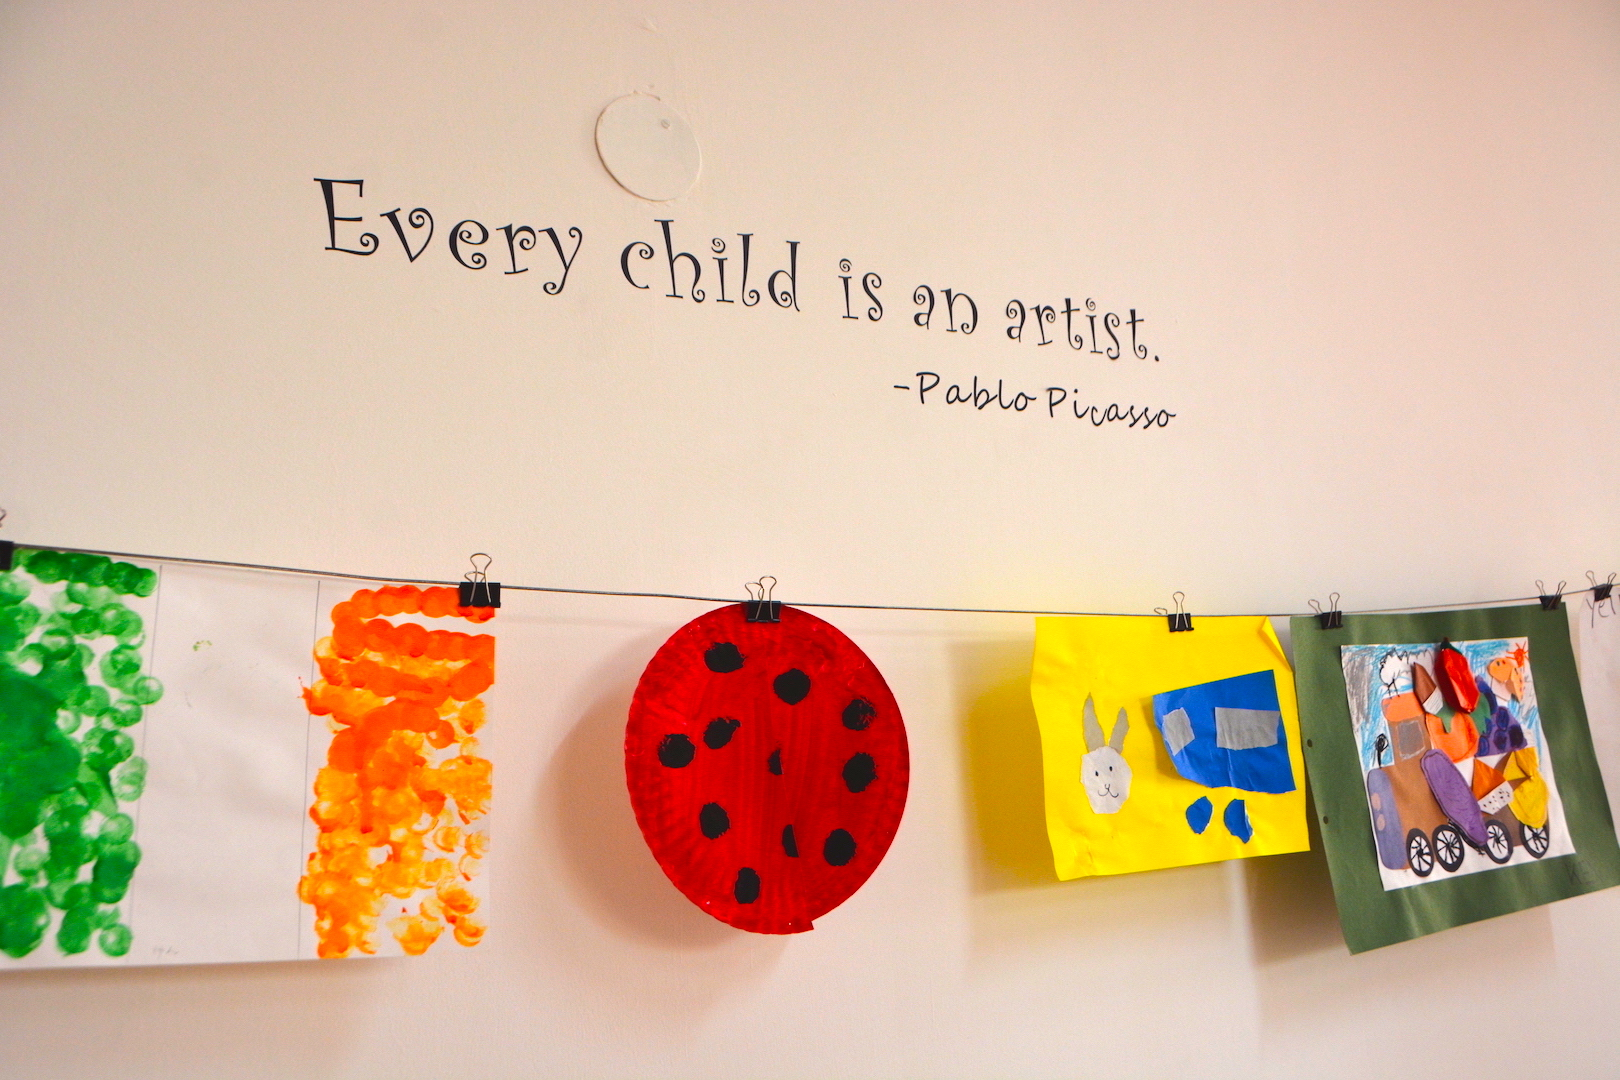 every child is an artist と描かれた壁